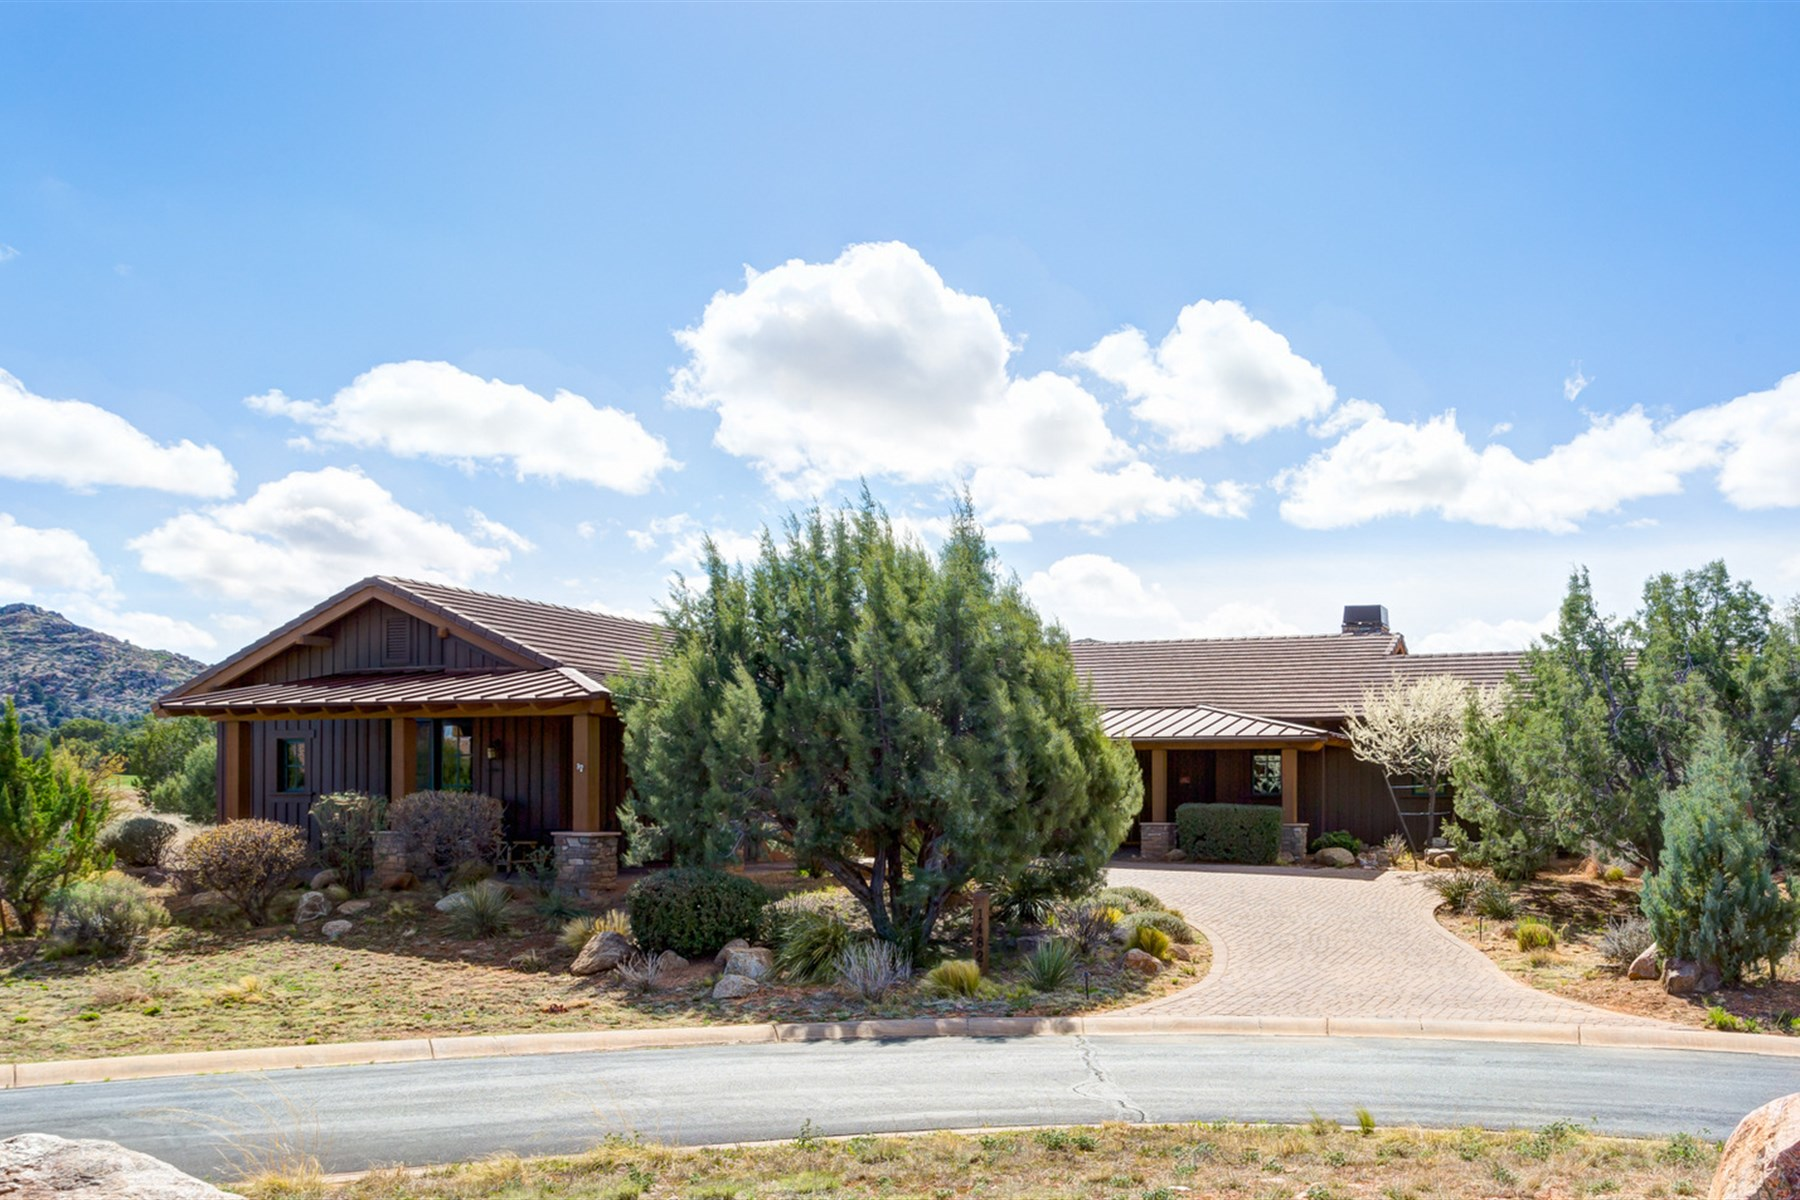 Частный односемейный дом для того Продажа на Highly upgraded Home bordering the 6th hole at Talking Rock Ranch 14821 N Dragons Breath Lane Prescott, Аризона, 86305 Соединенные Штаты